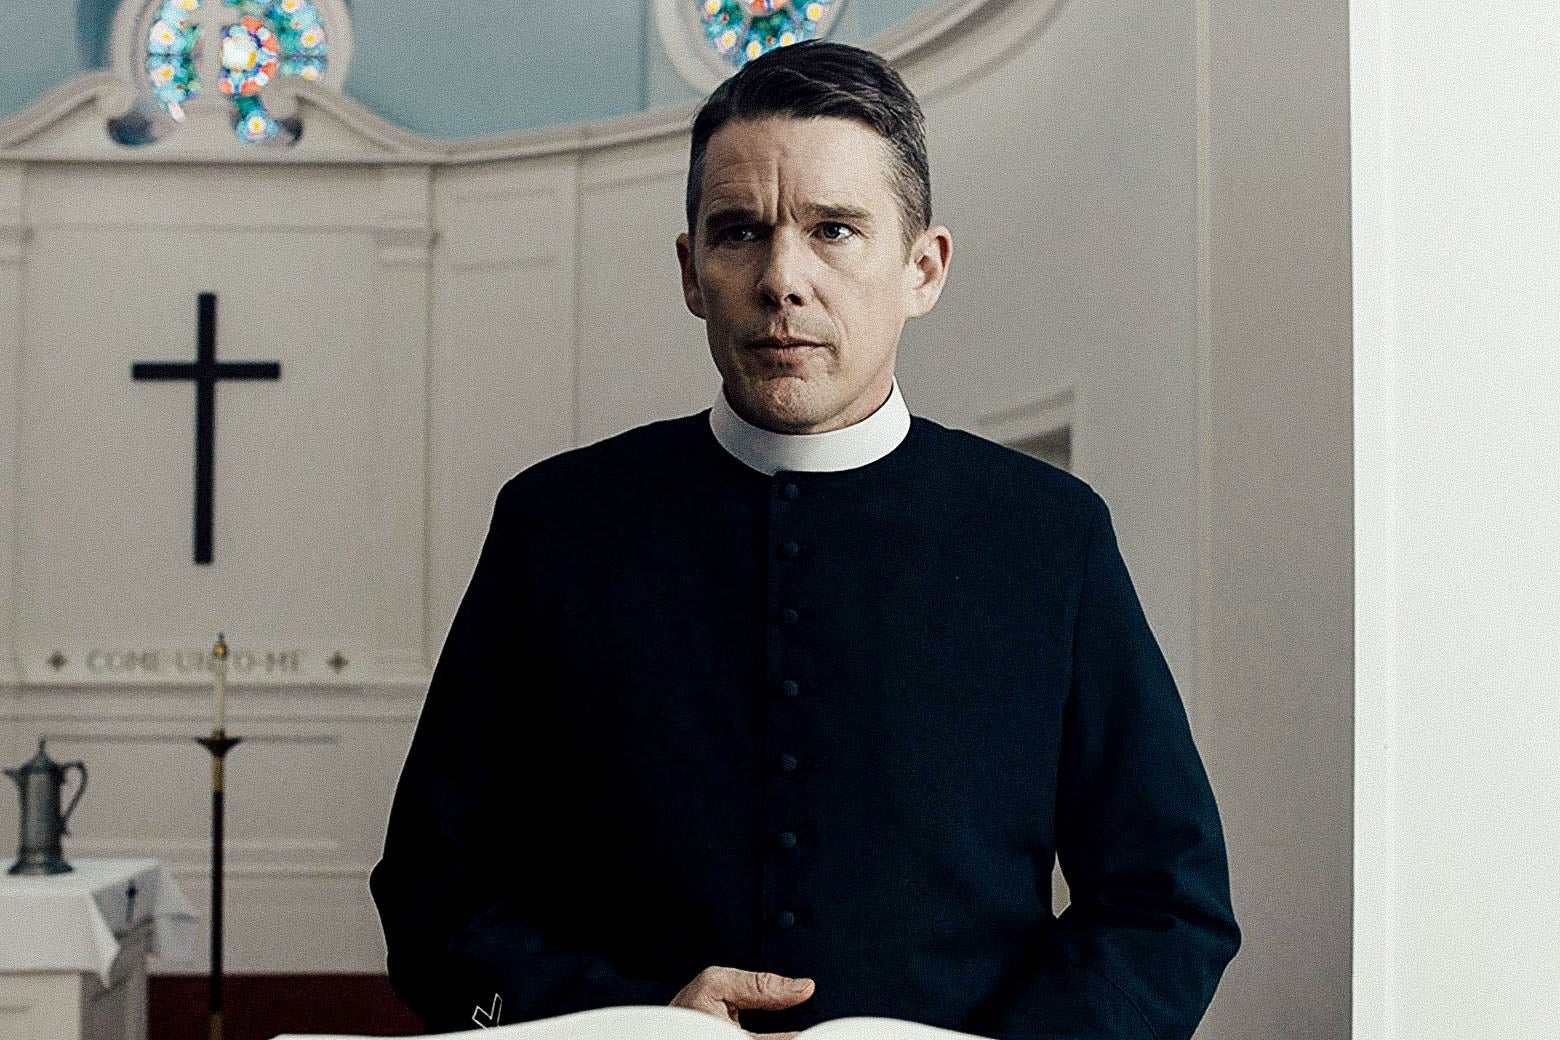 Ethan Hawke, dressed as a reverent at the front of a church, in the film First Reformed.